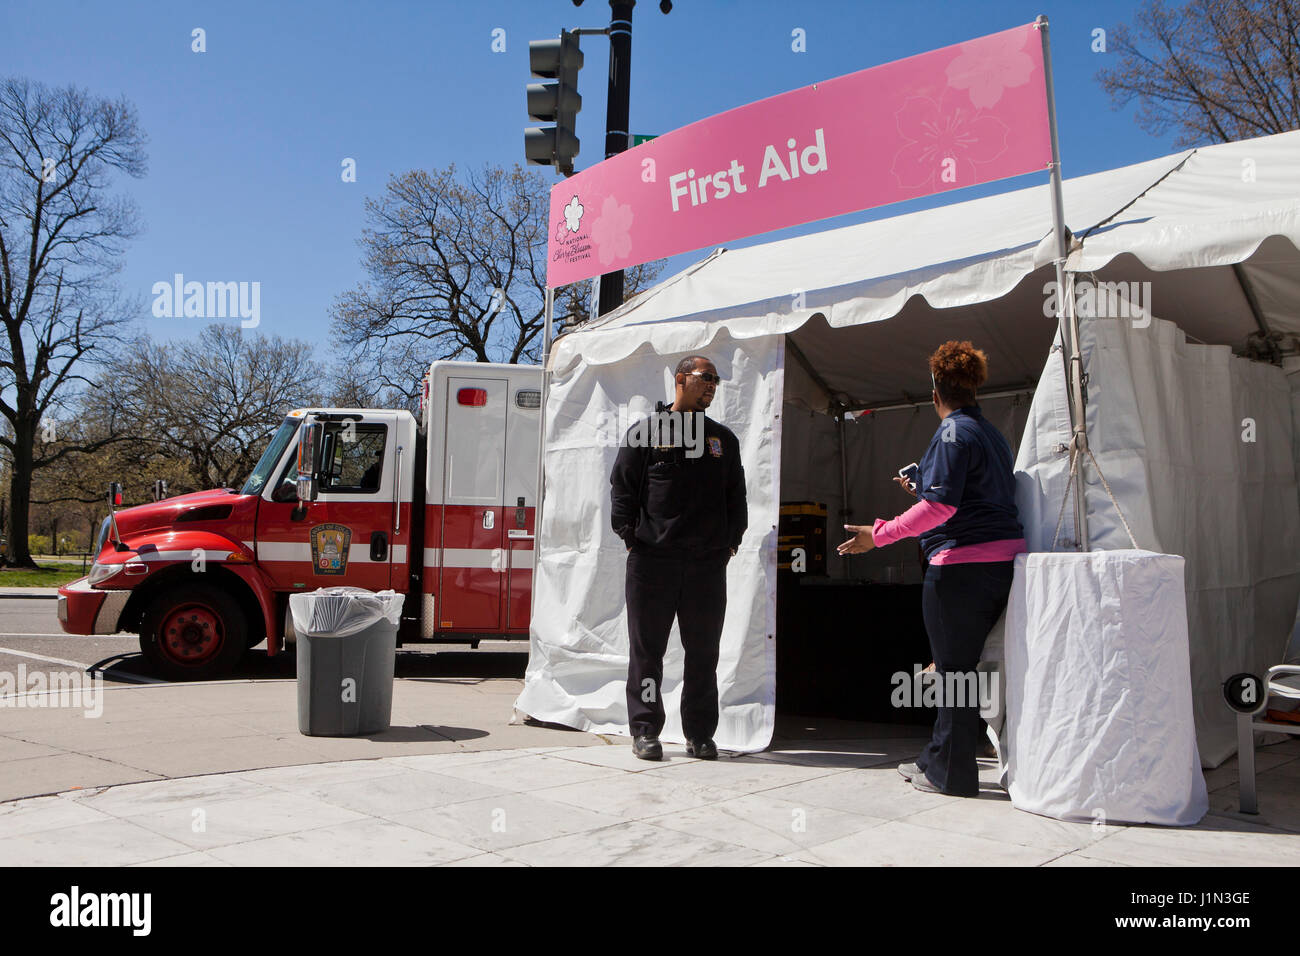 First Aid tent at an outdoor event - USA - Stock Image